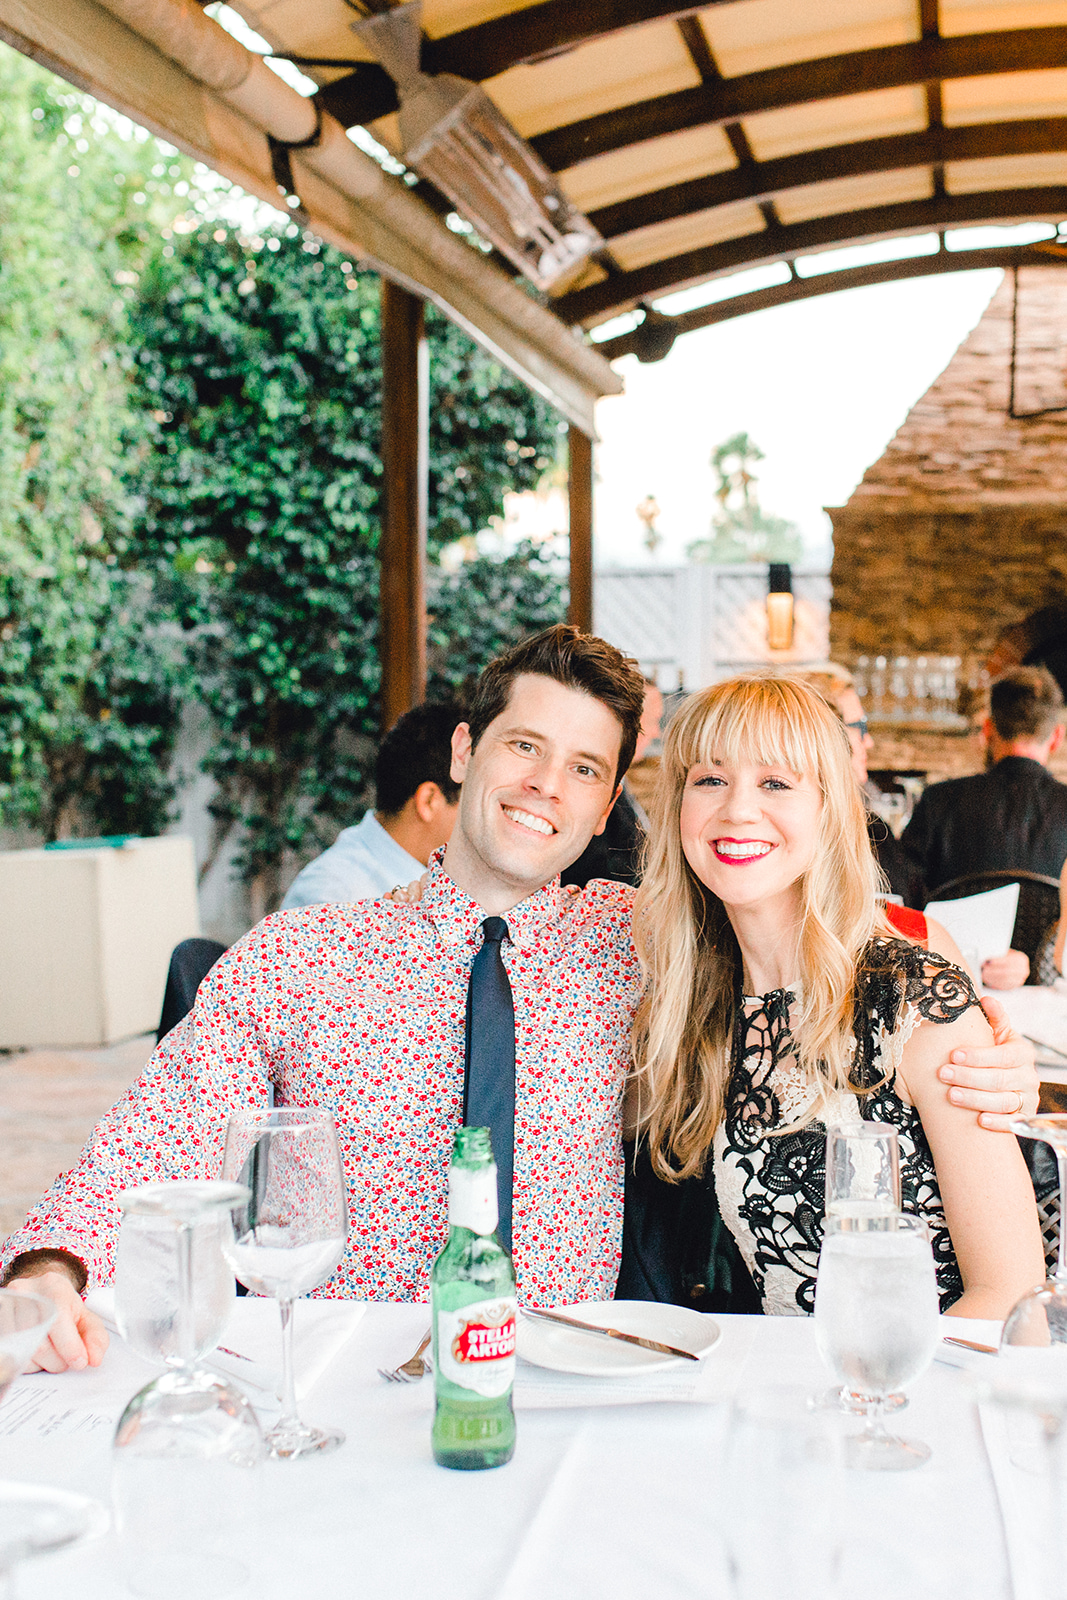 four corners photography highlights libby and cary (135 of 225)best atlanta wedding photographer joshua tree wedding atlanta wedding.jpg